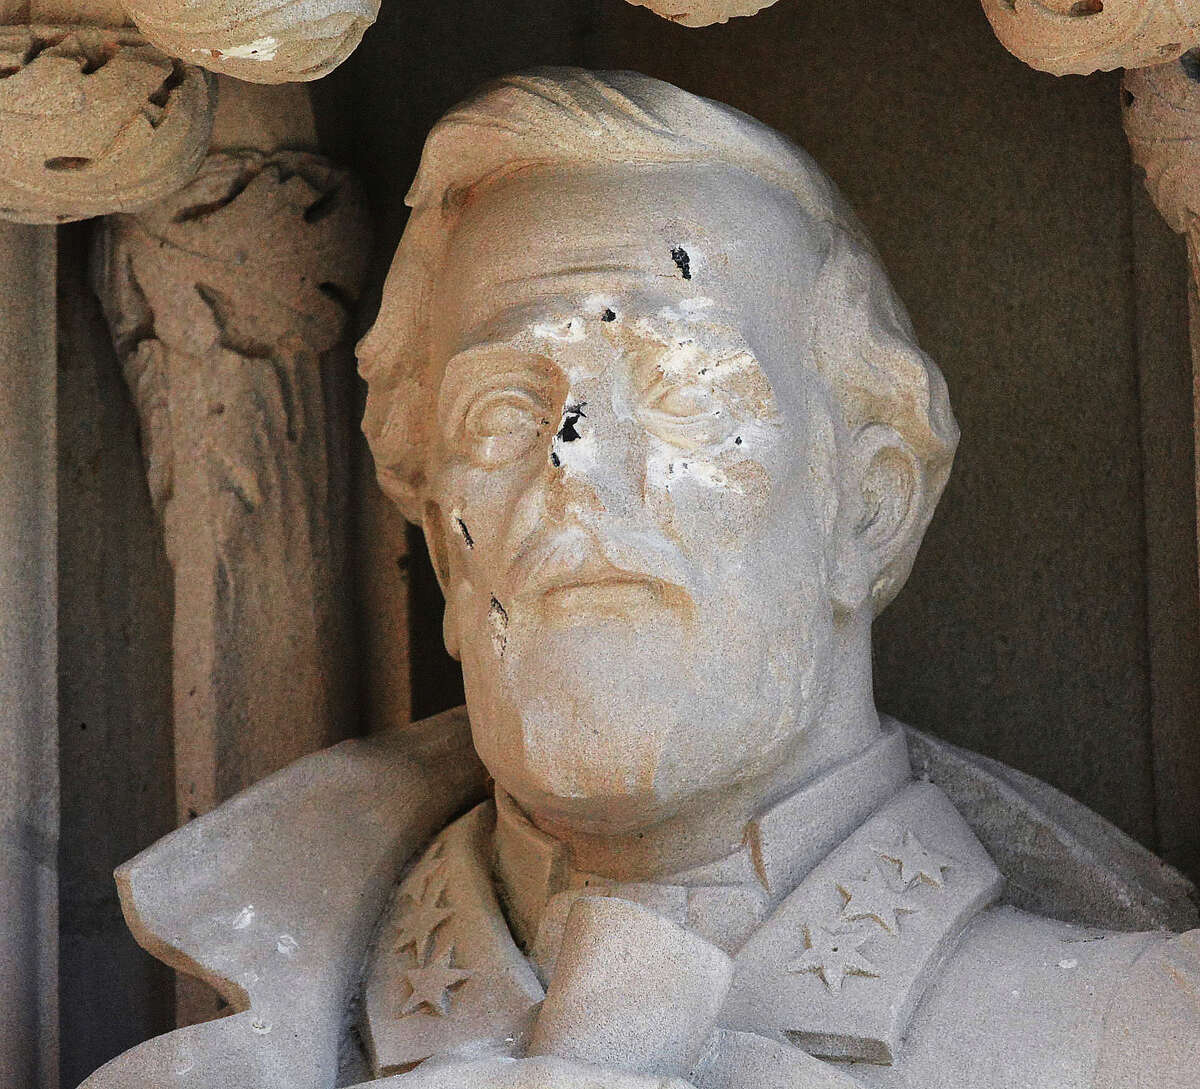 Duke University - Durham, North Carolina Statue of: Confederate Gen. Robert E. Lee Removed on: Aug. 19, 2017